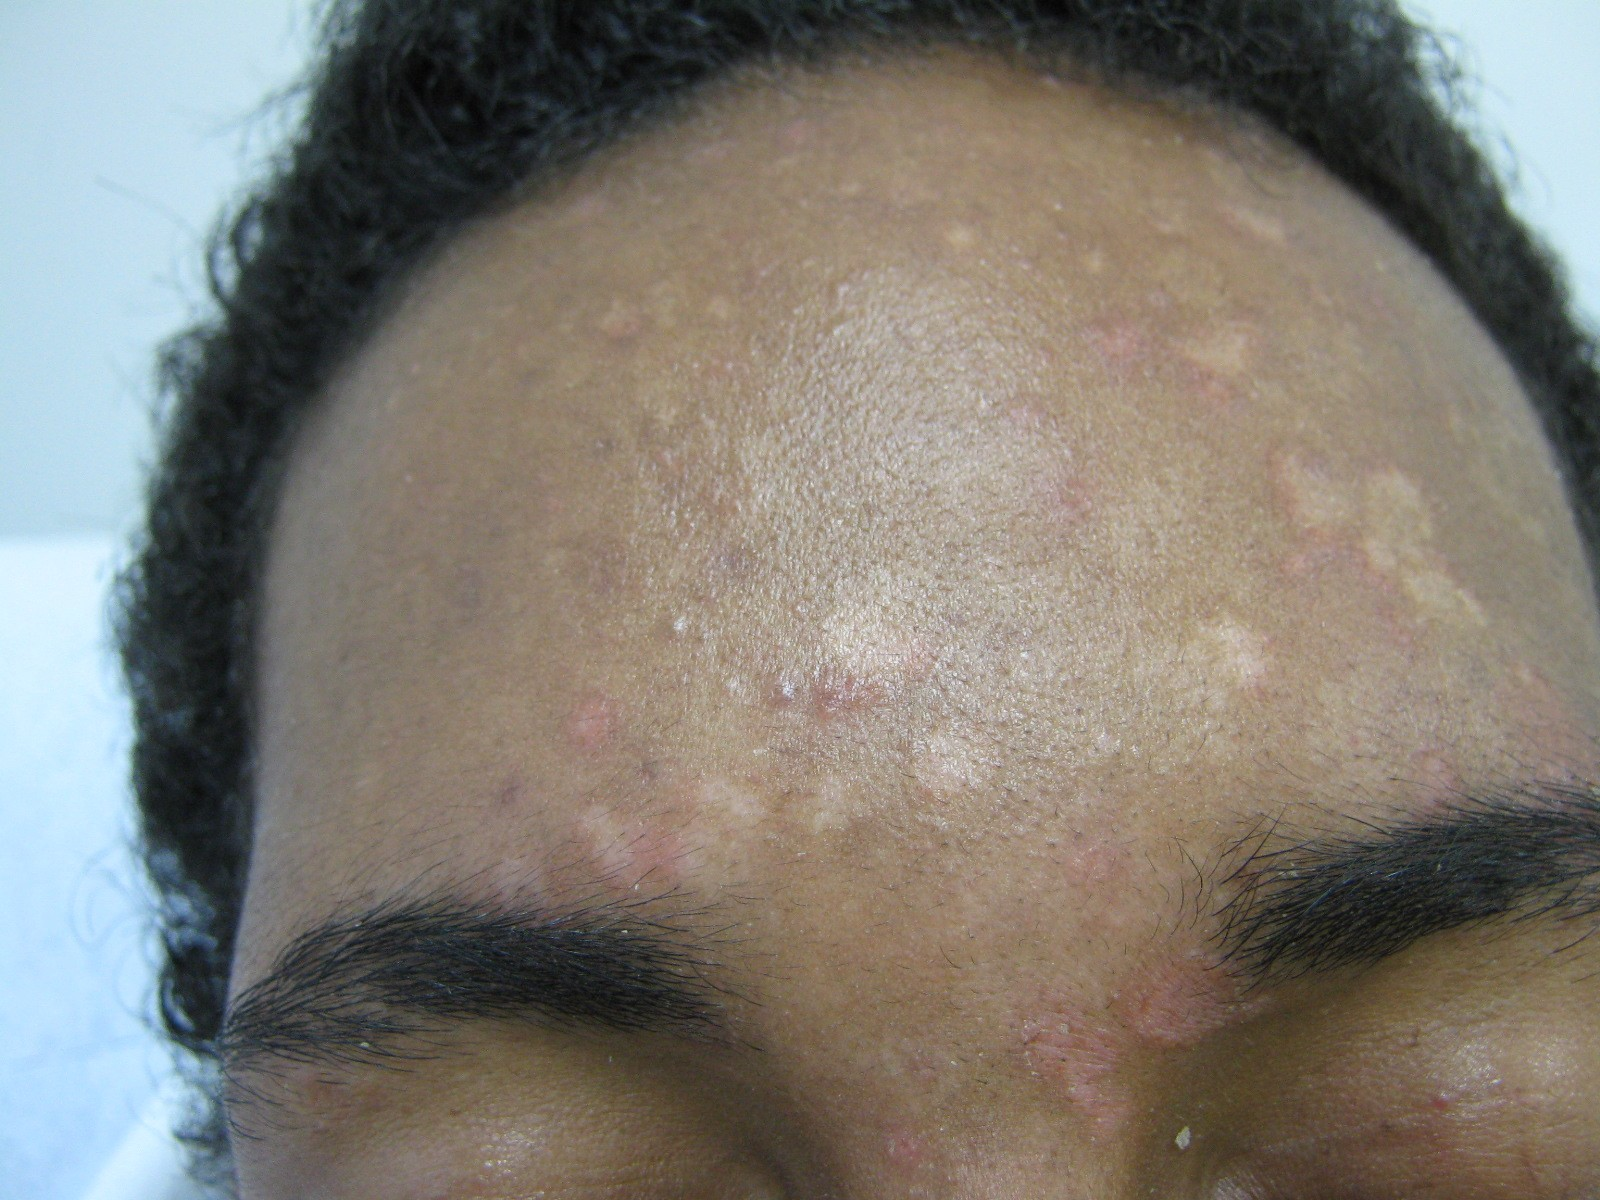 Pityriasis Rosea Pictures, Treatment & Causes - MedicineNet